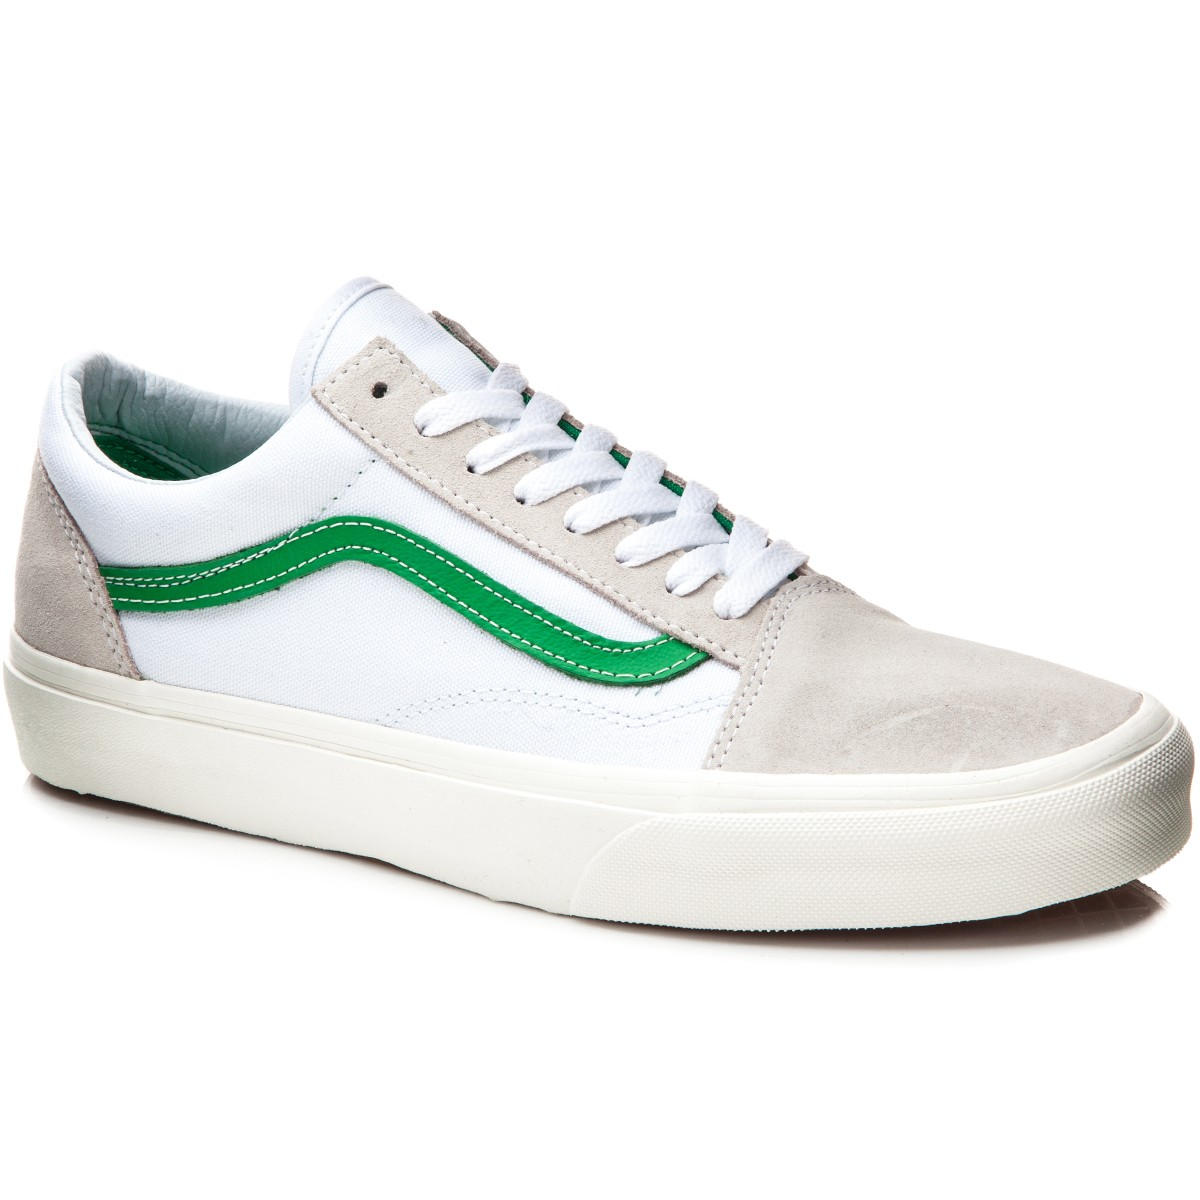 21556b32d8a6 Vans Old Skool Shoes